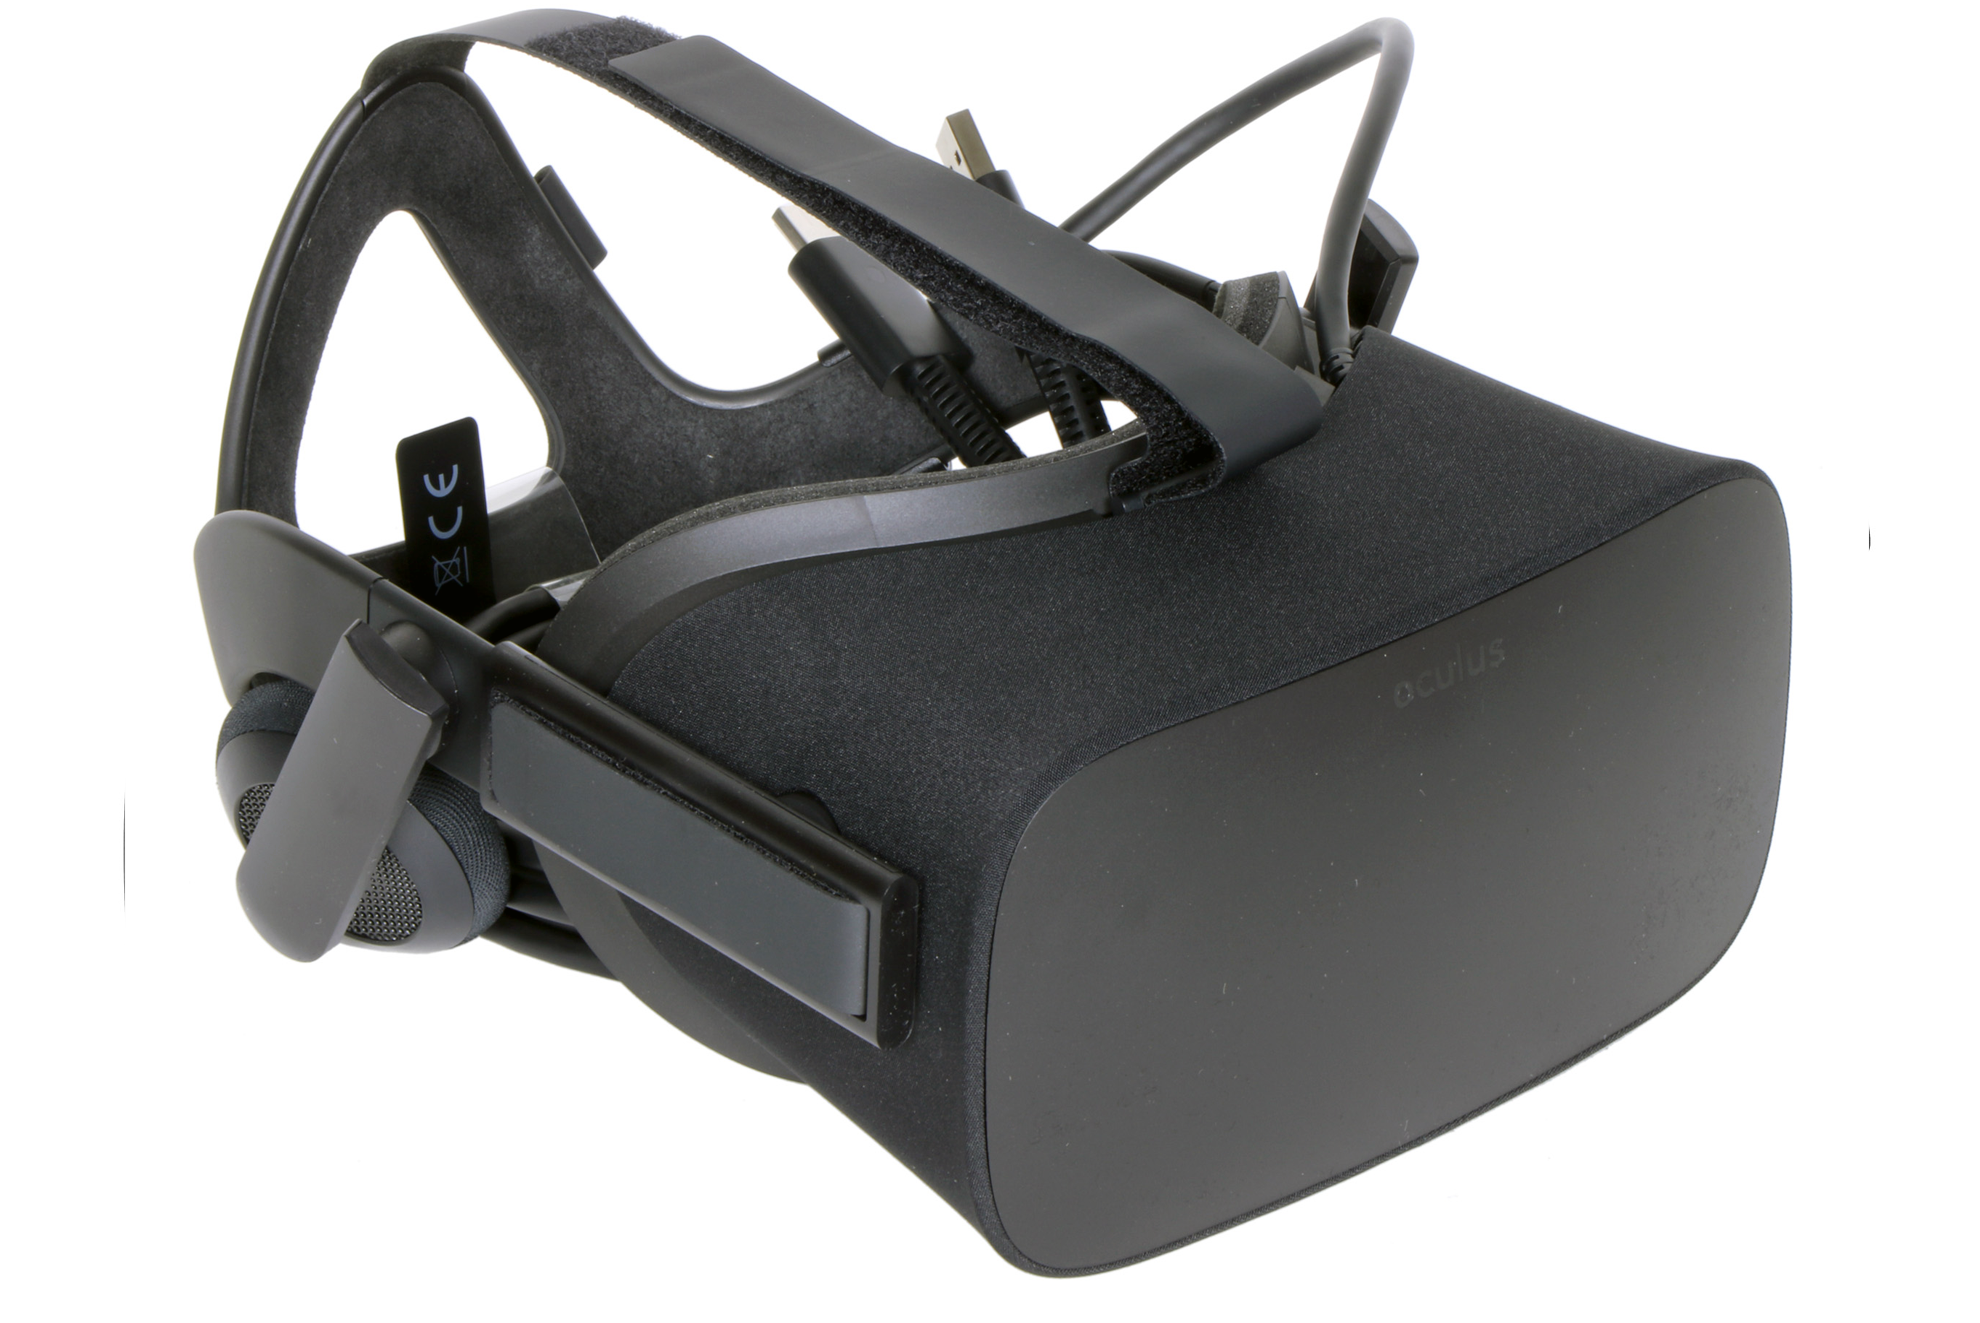 oculus-rift-virtual-reality-headset-hire-south-africa